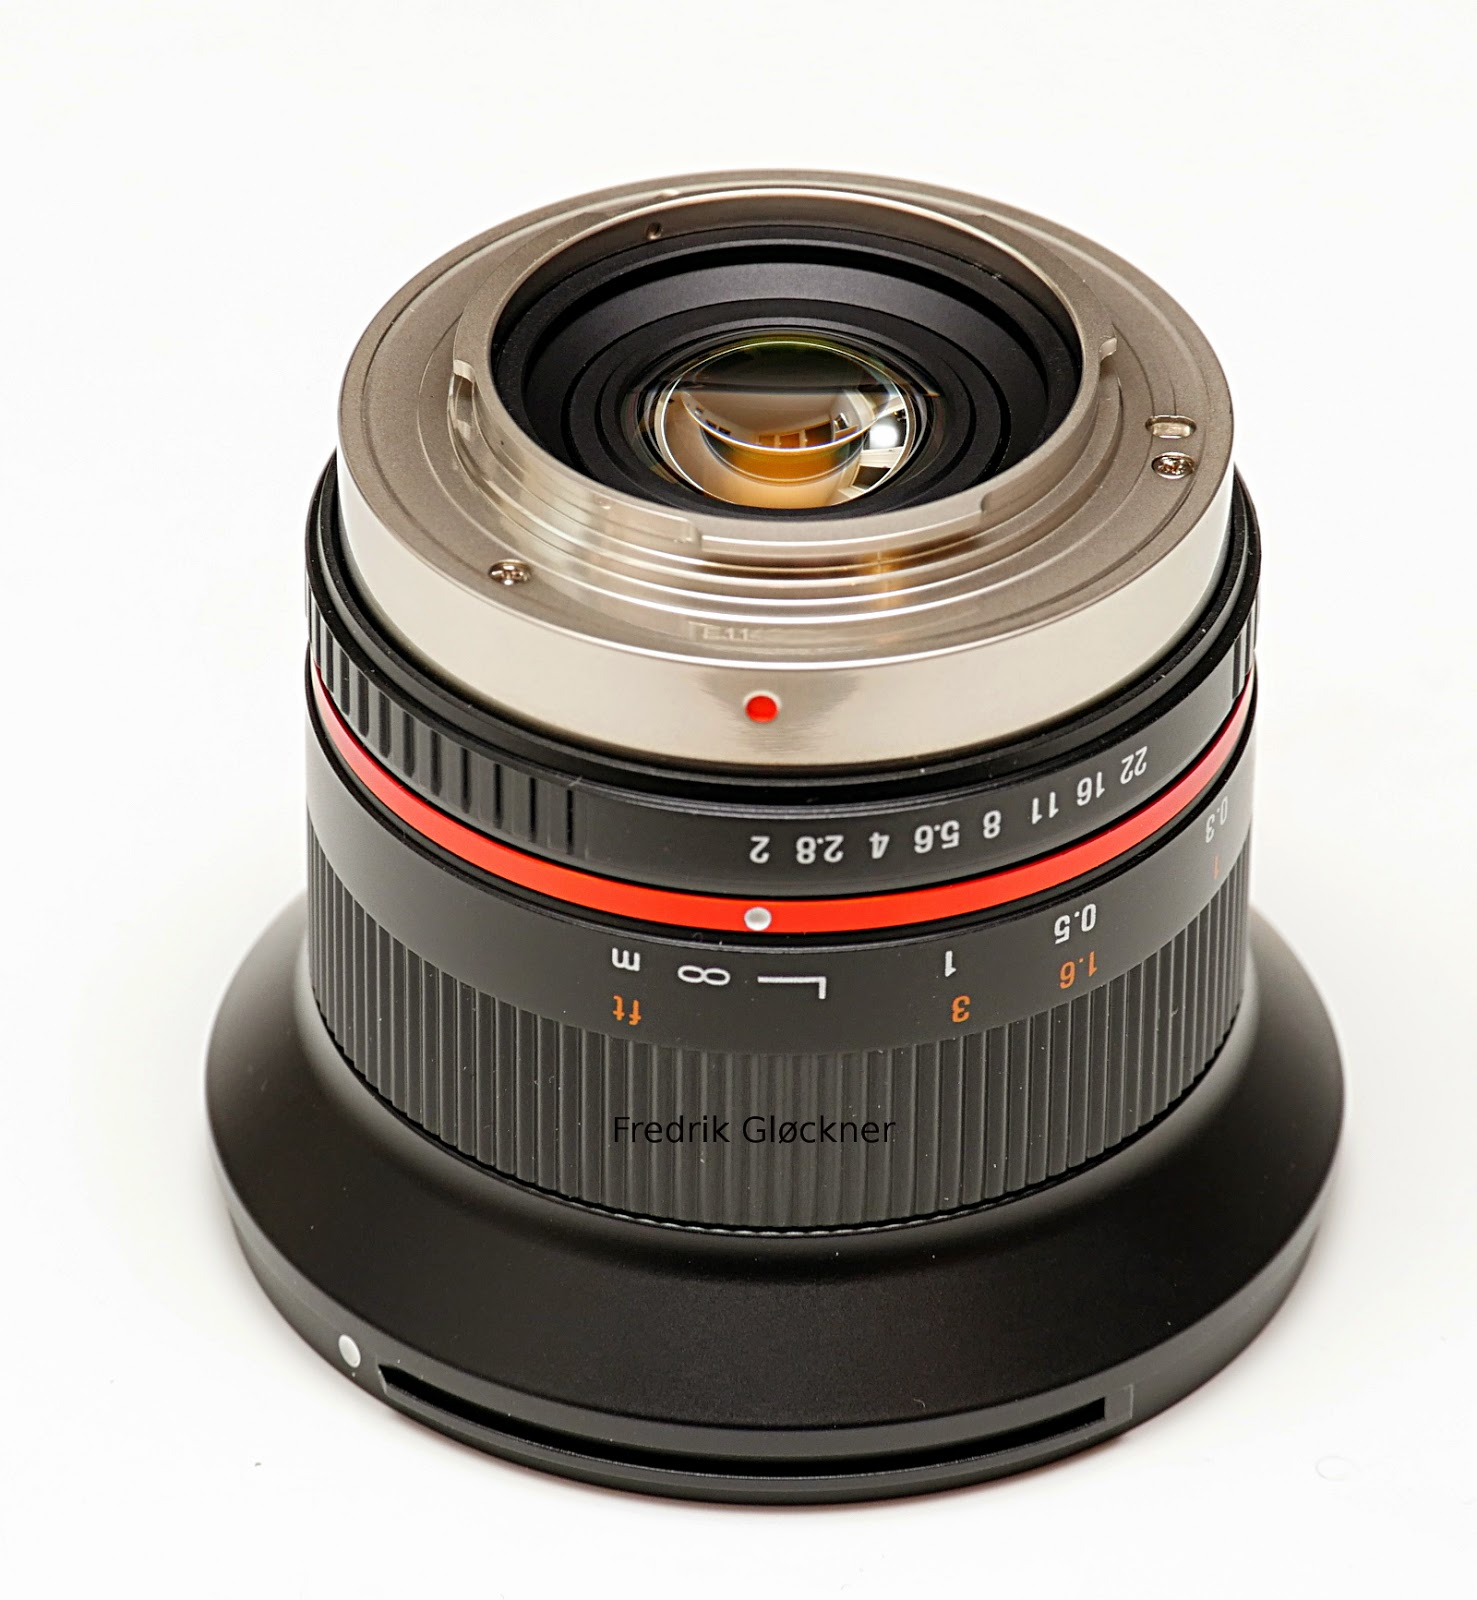 Micro 4/3rds Photography: Samyang 12mm f/2 review: Compact